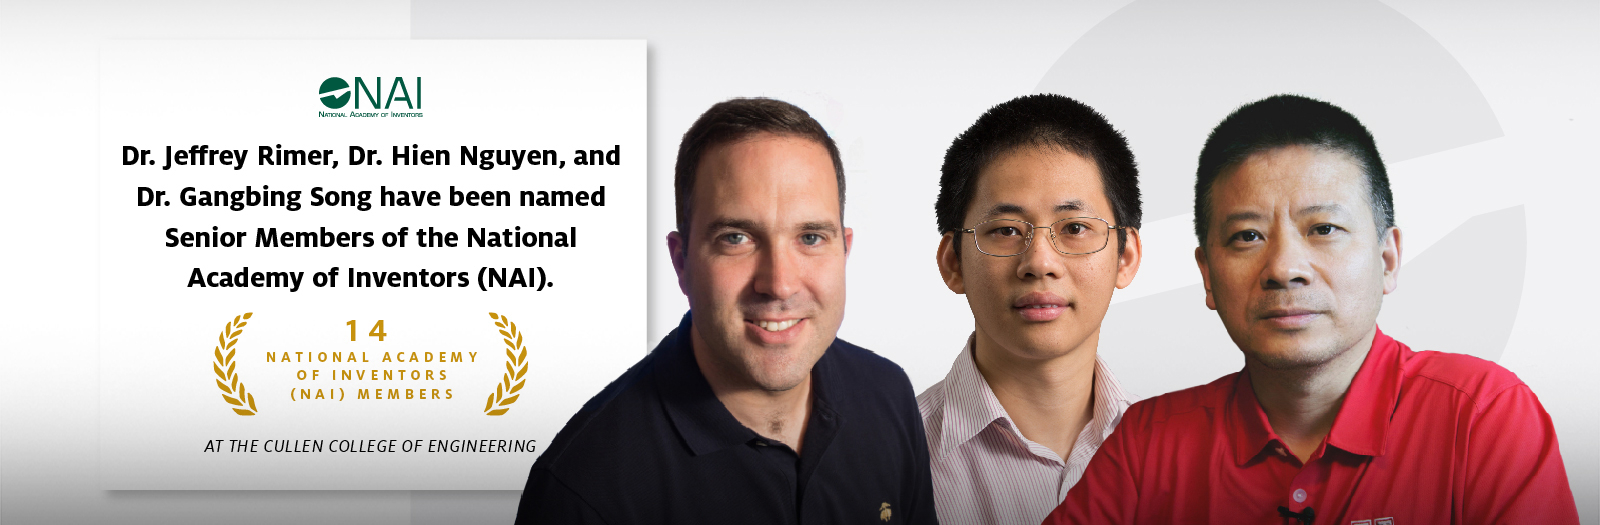 Dr. Jeffrey Rimer, Dr. Hien Nguyen, and Dr. Gangbing Song have been named Senior Members of the National Academy of Inventors (NAI)